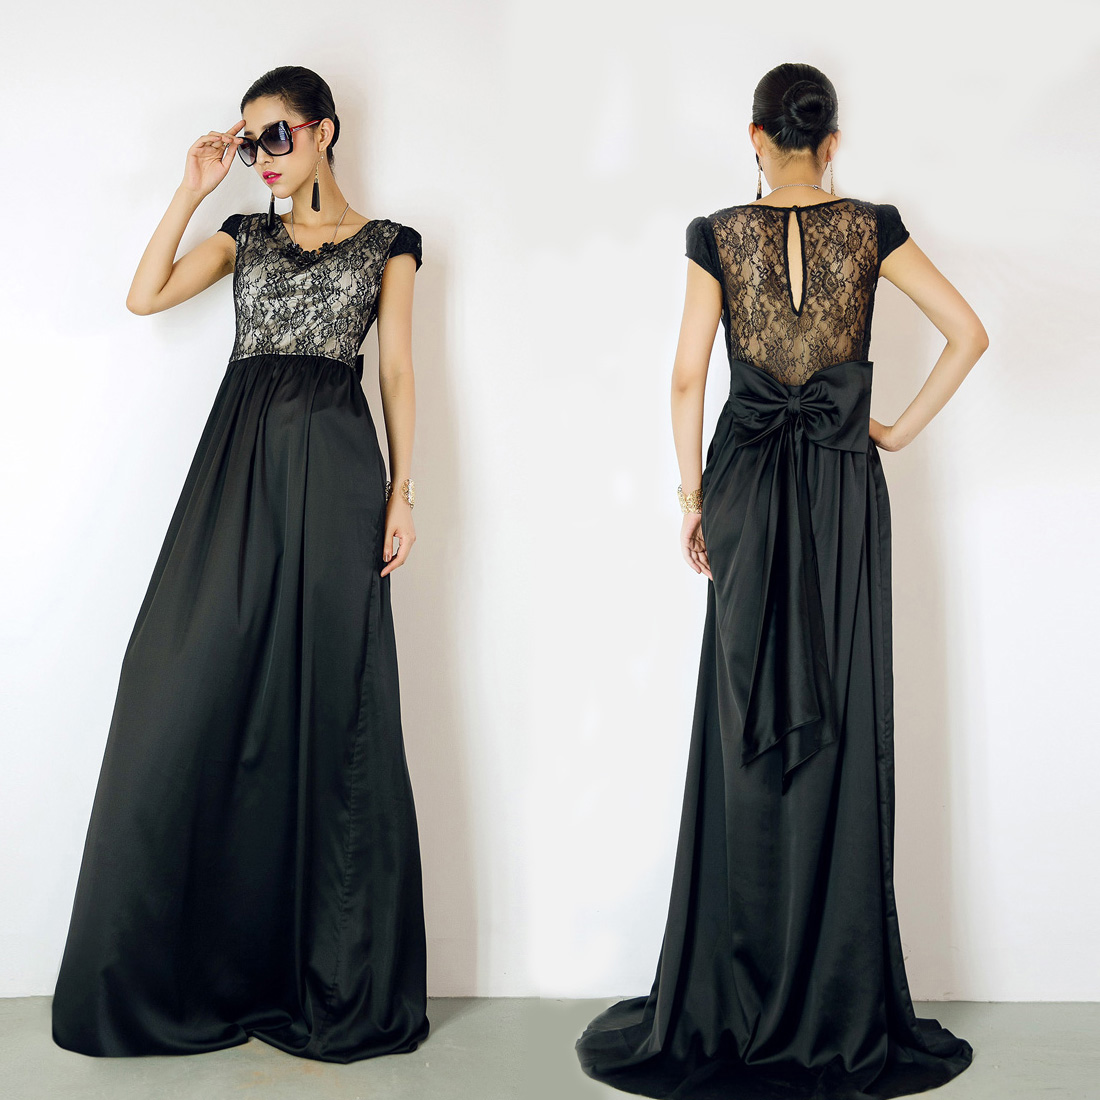 Simple Black Dress Designs 2013 For Girls  Black Frock Designs